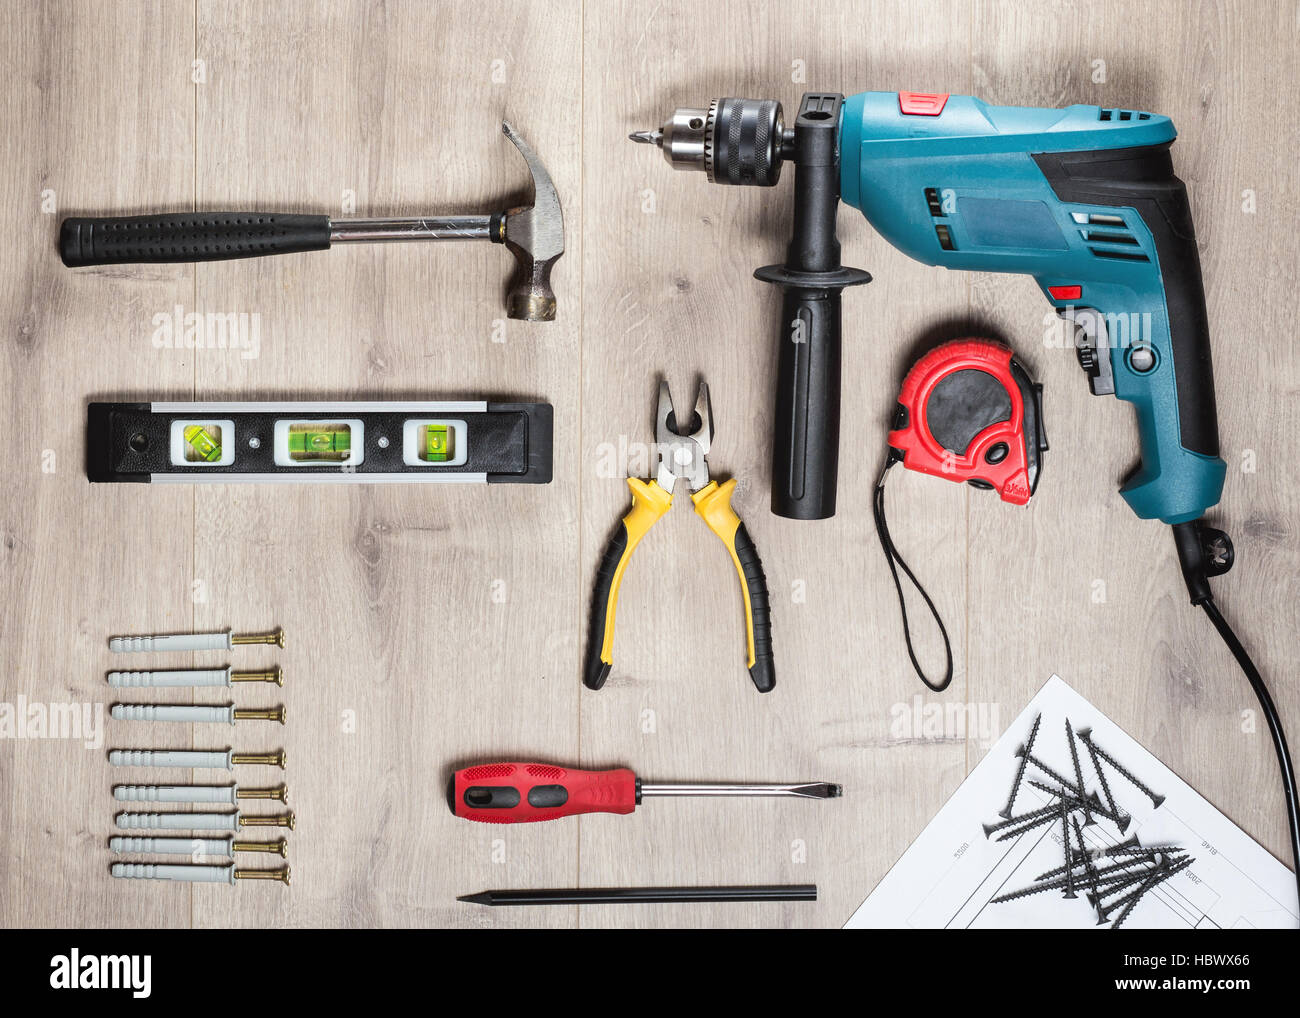 flat lay set of construction tools to repair on a wooden surface